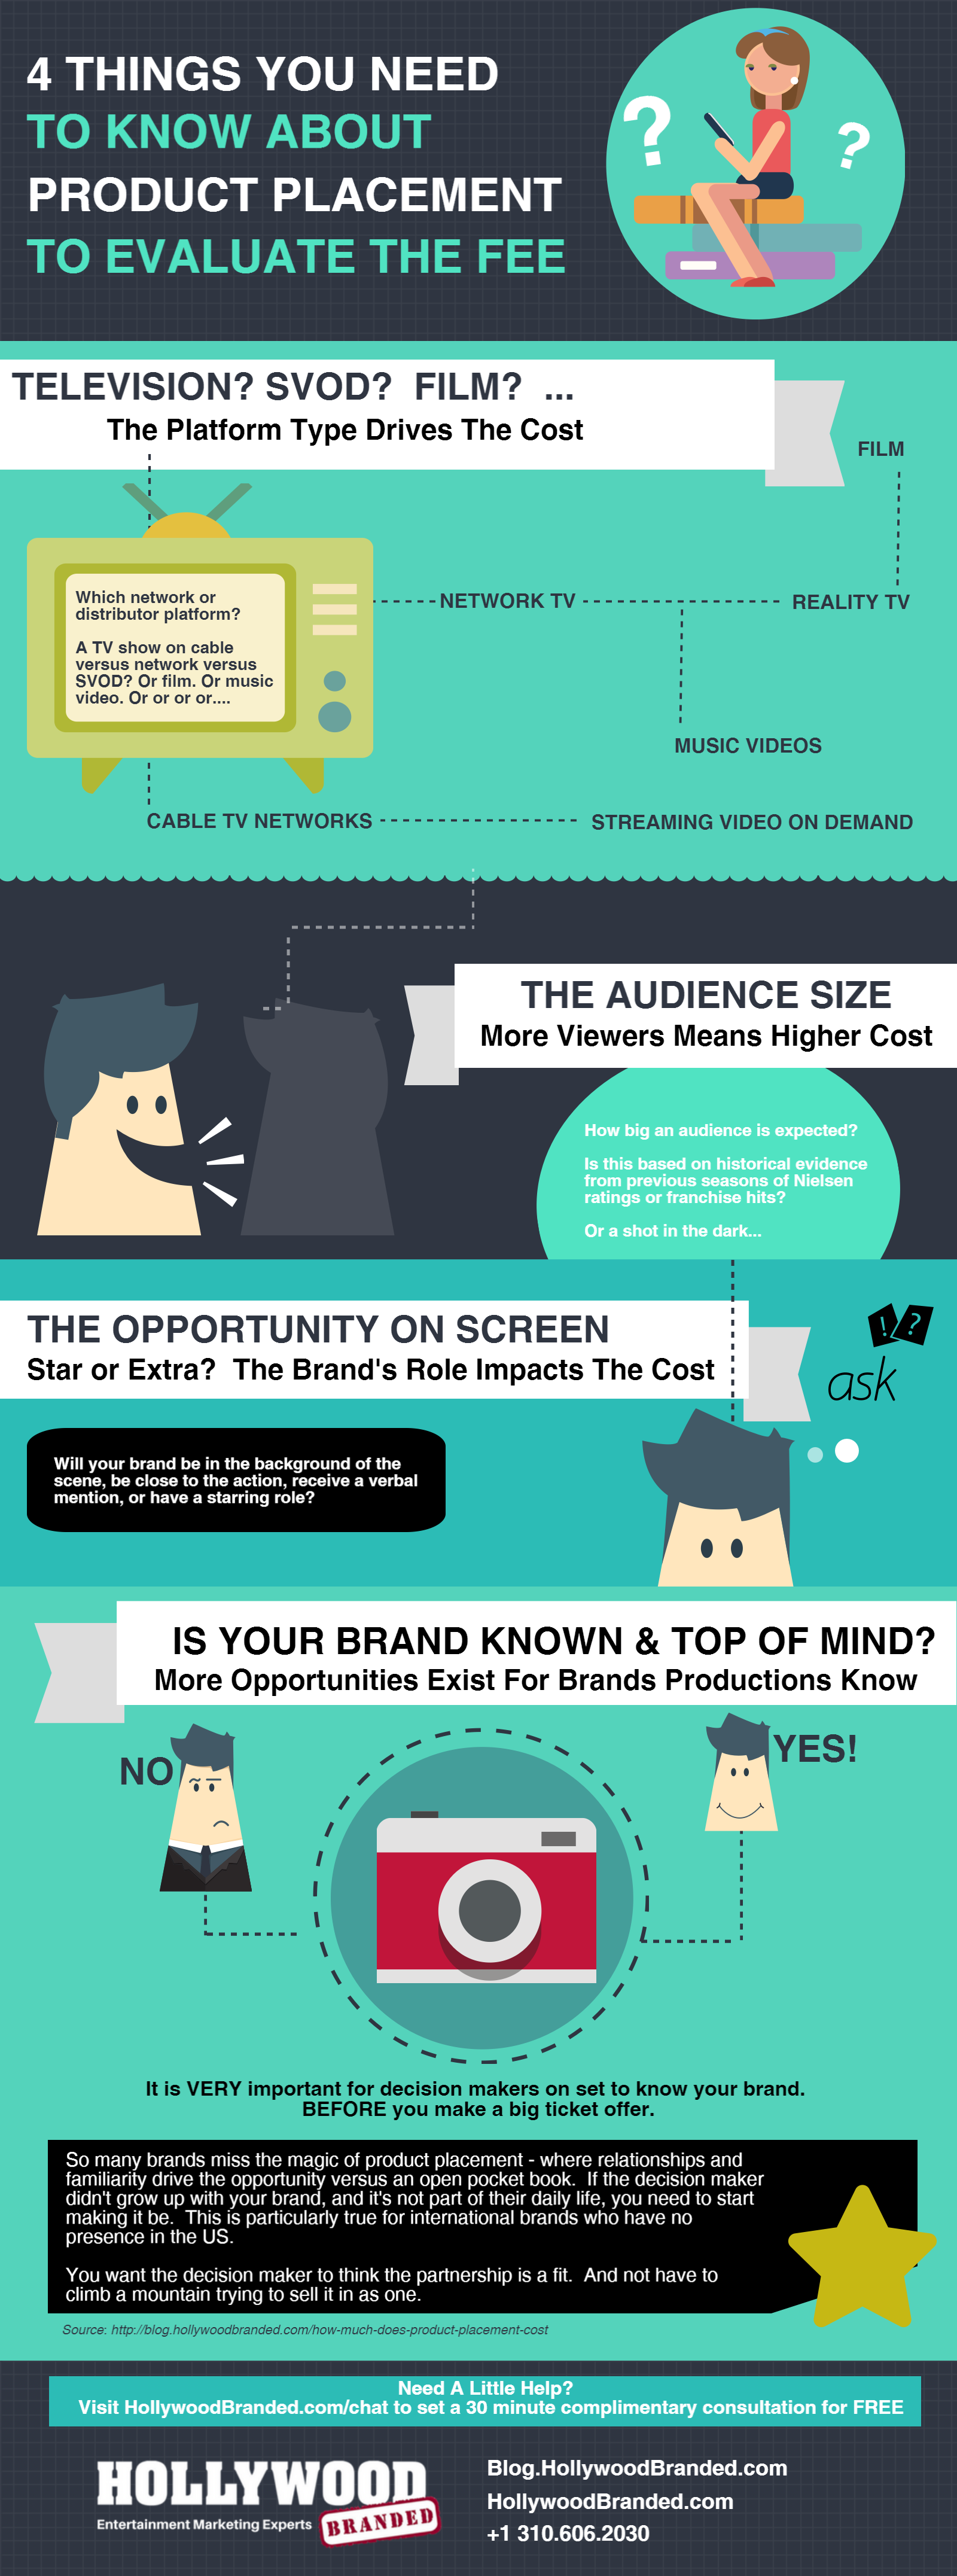 4 Things To Know About Product Placement Costs.png